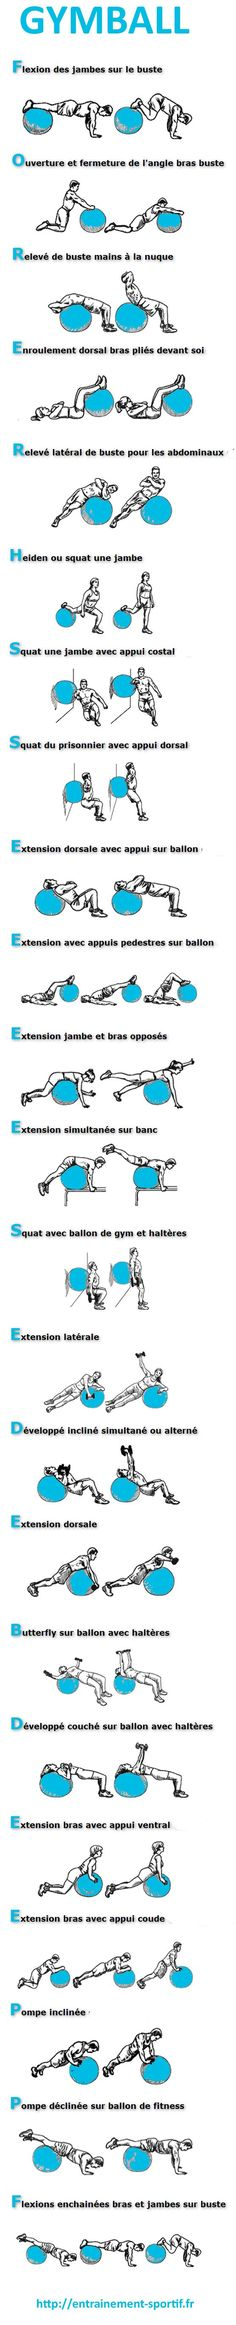 Le ballon de gym a tout bon : 23 exercices de musculation à faire chez soi avec un ballon de gym - Tap the pin if you love super heroes too! Cause guess what? you will LOVE these super hero fitness shirts!